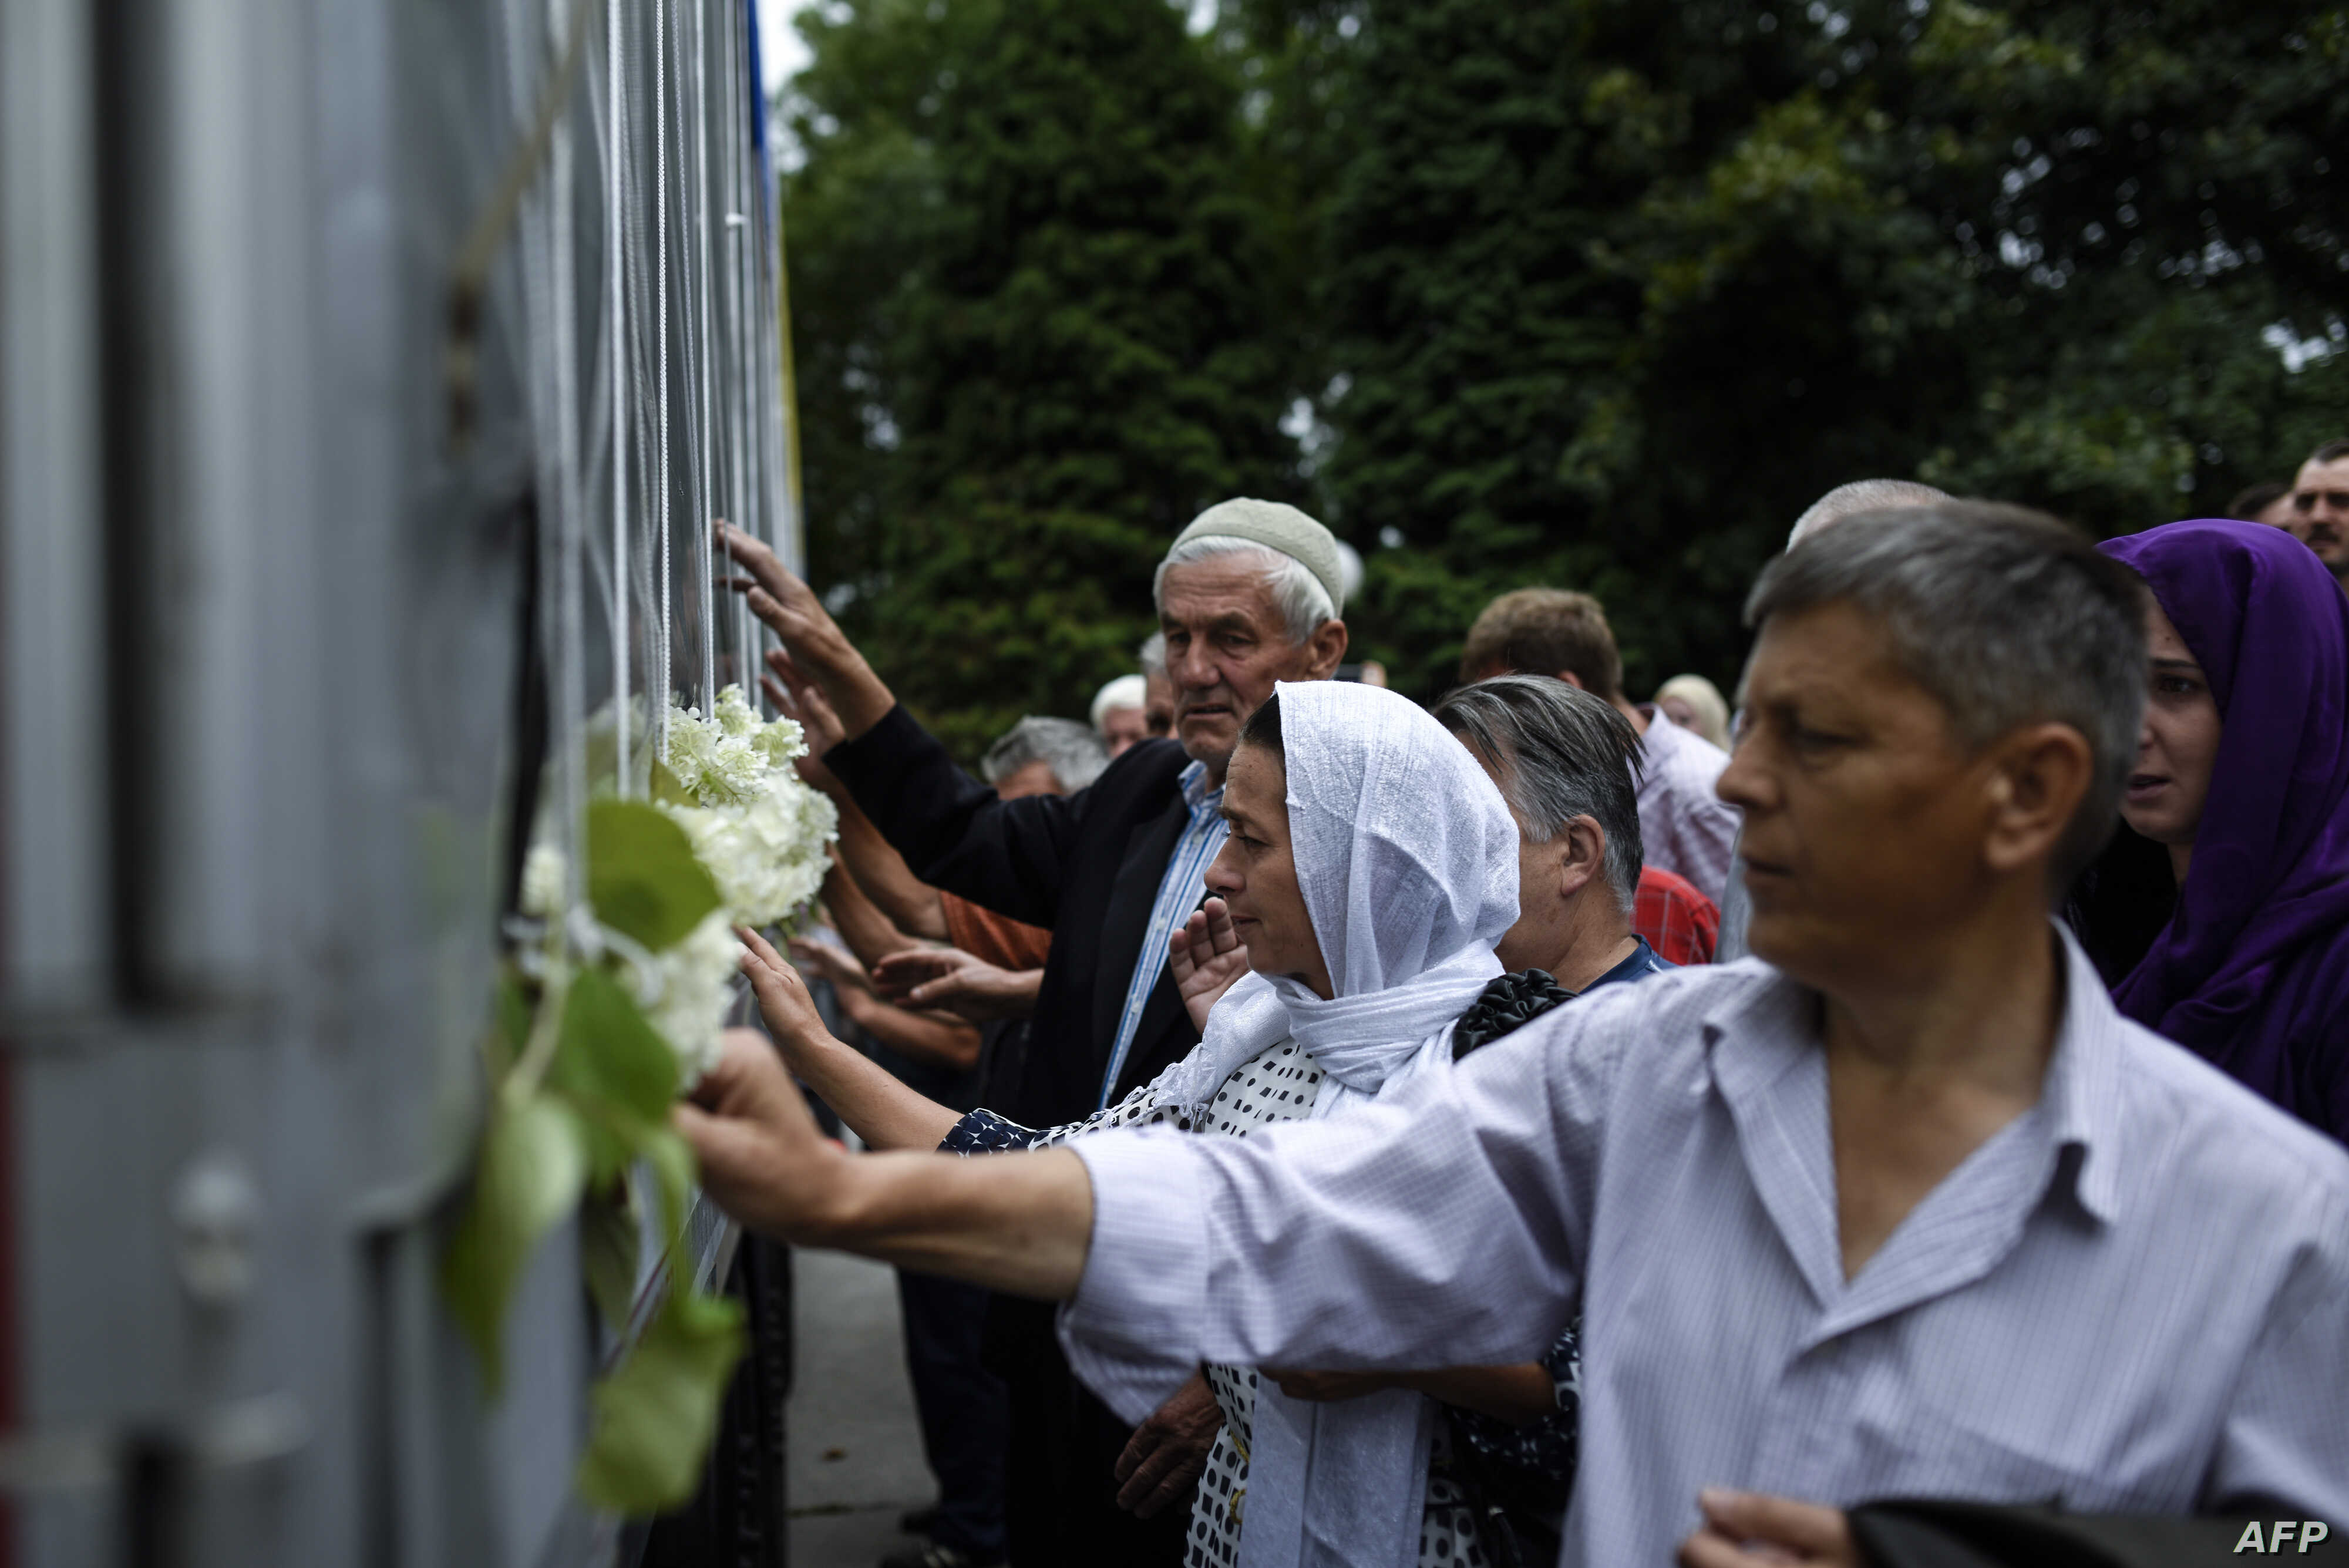 Bosnian muslims reacts as they touch a truck carrying 136 coffins of newly identified victims of the 1995 Srebrenica massacre in the town of Visoko, near Sarajevo, July 9, 2015.